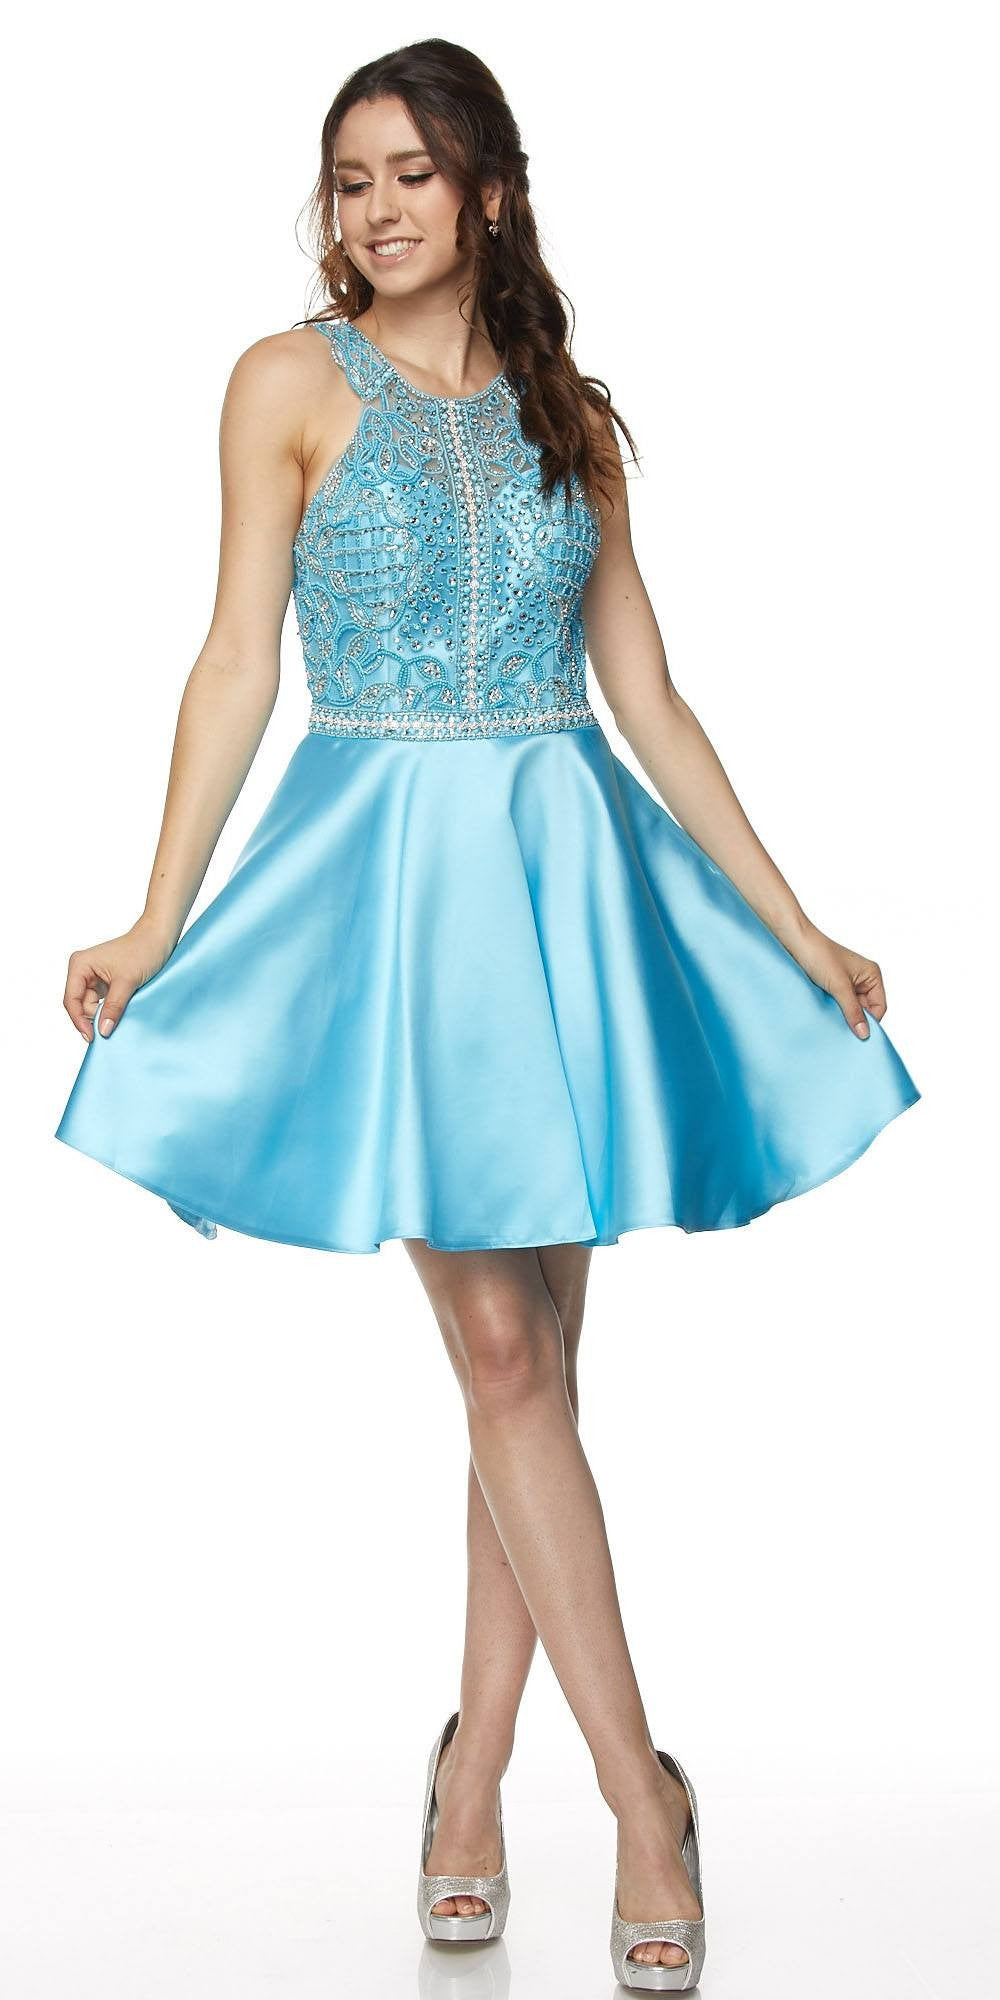 Juliet 779 Silver Embellished Bodice Short Prom Dress Sleeveless ...